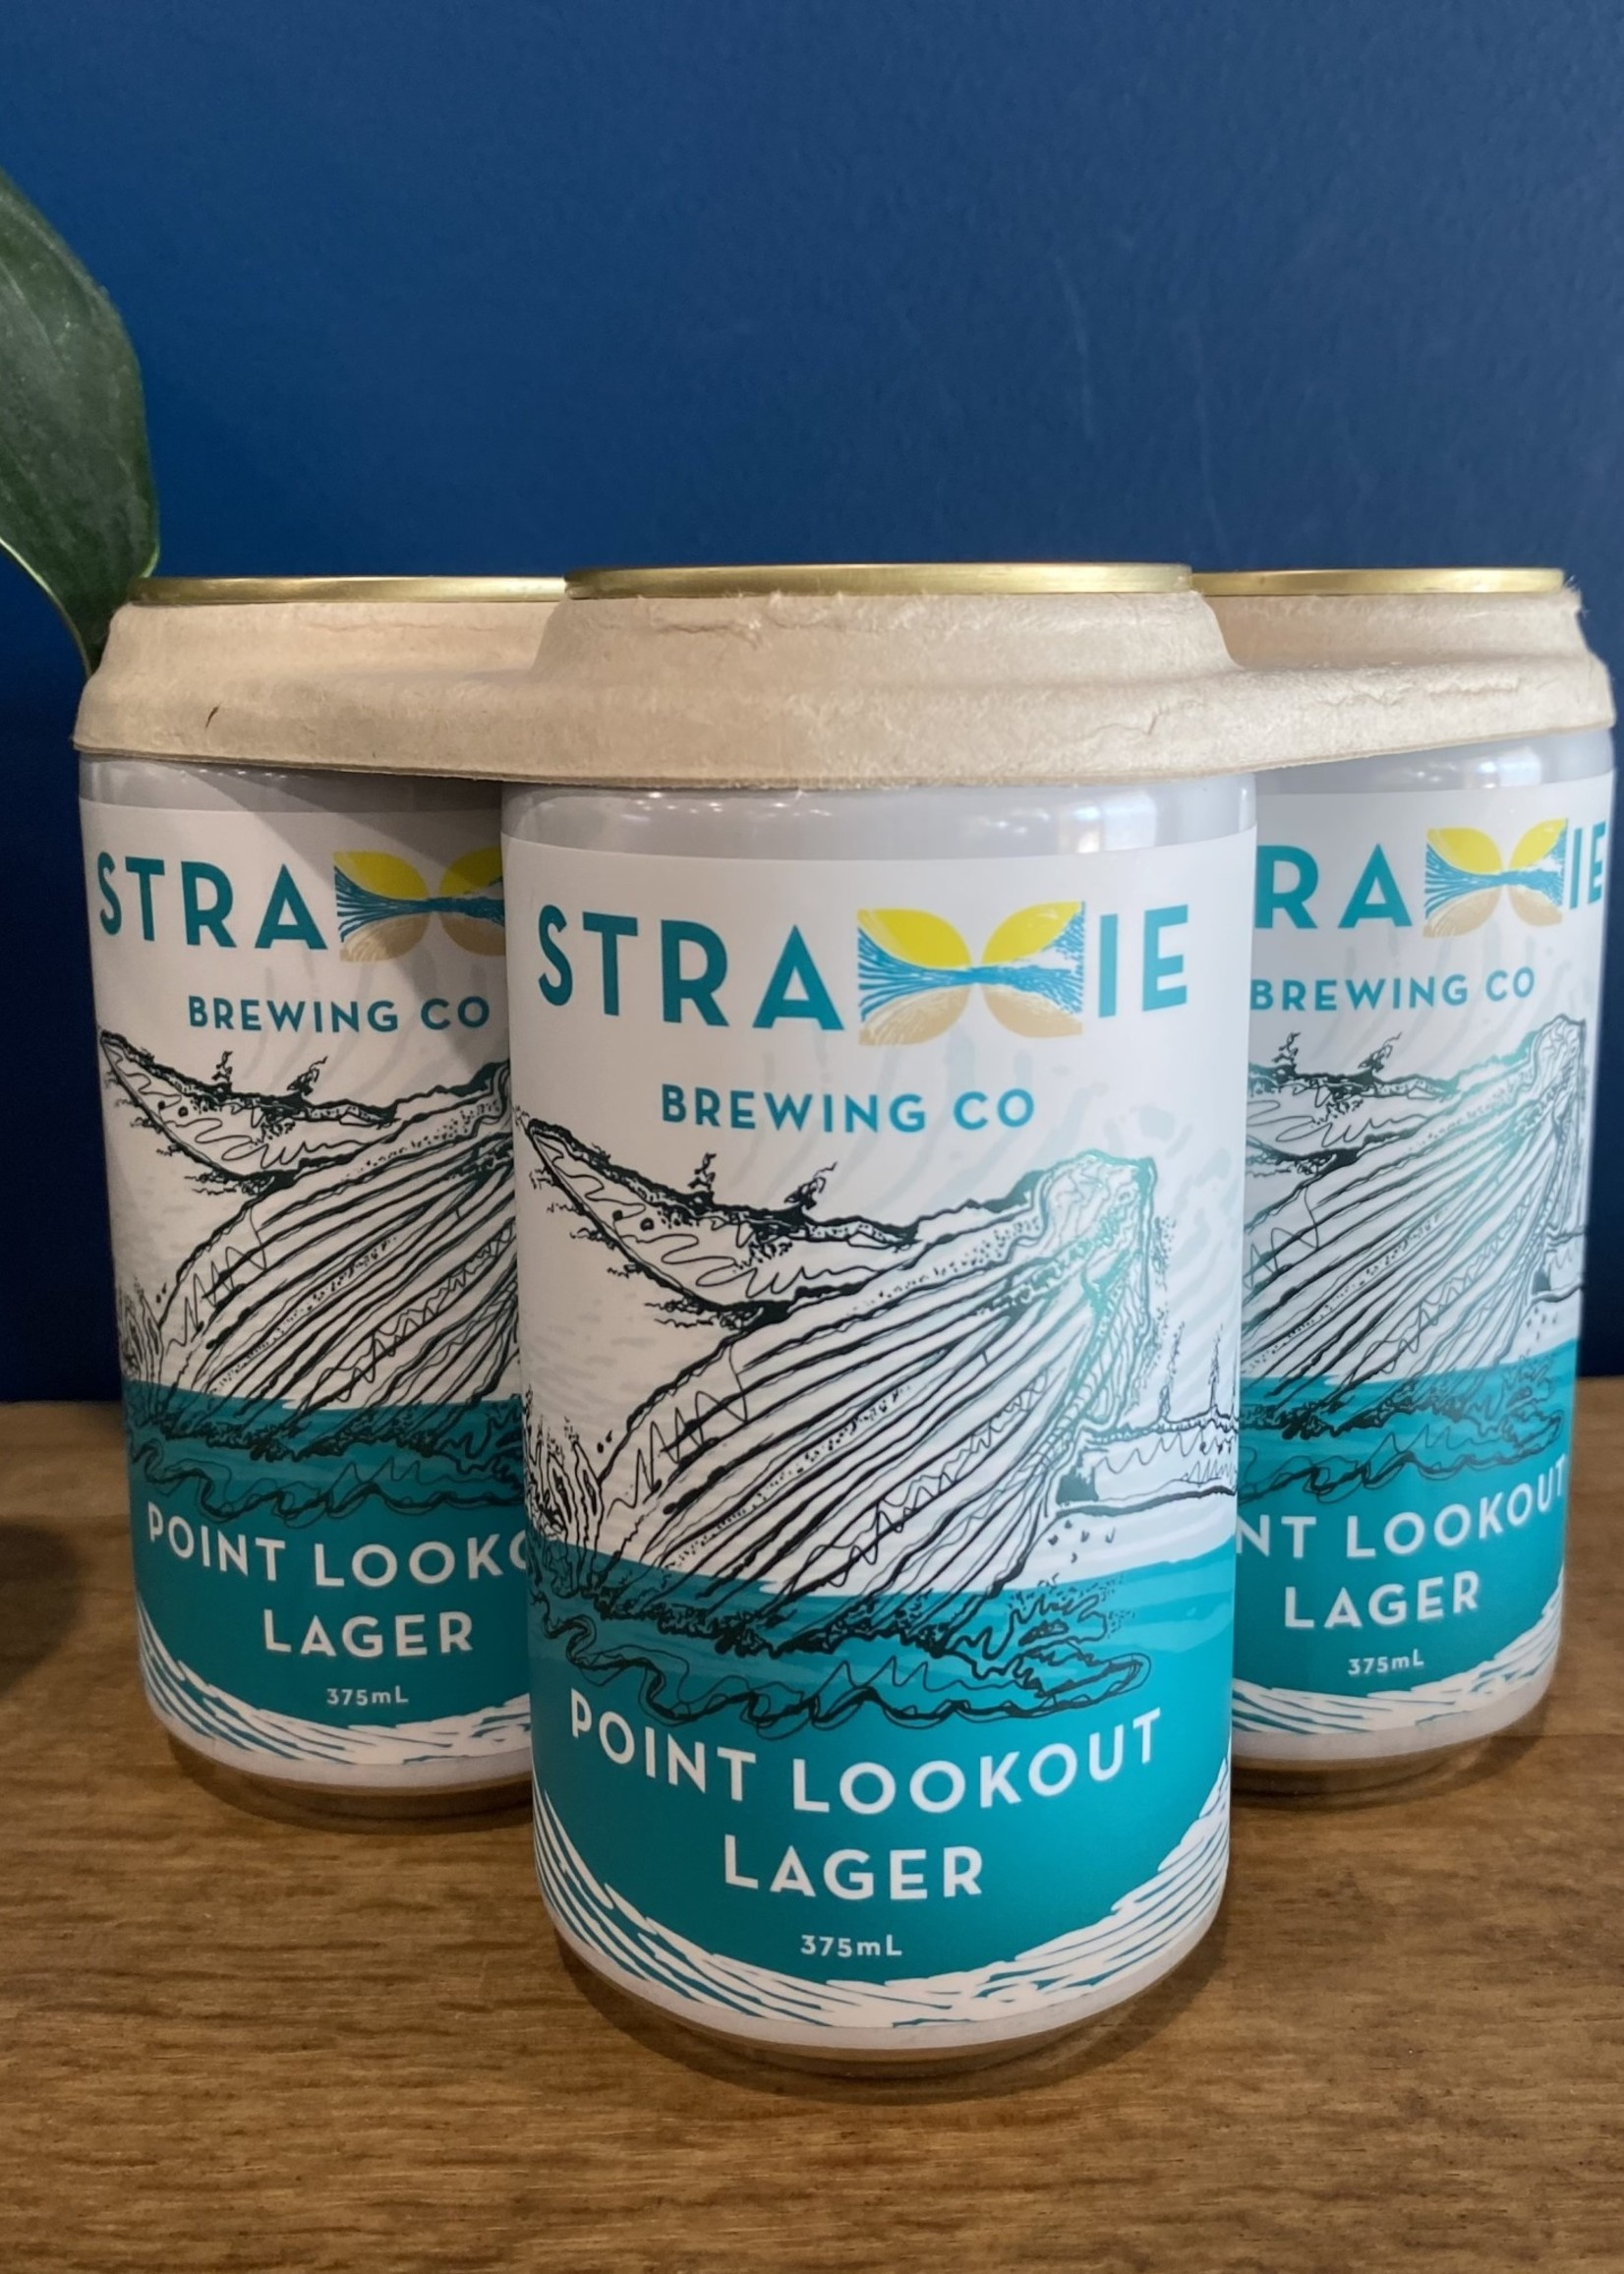 Stradbroke Brewing Co. Point Lookout Lager